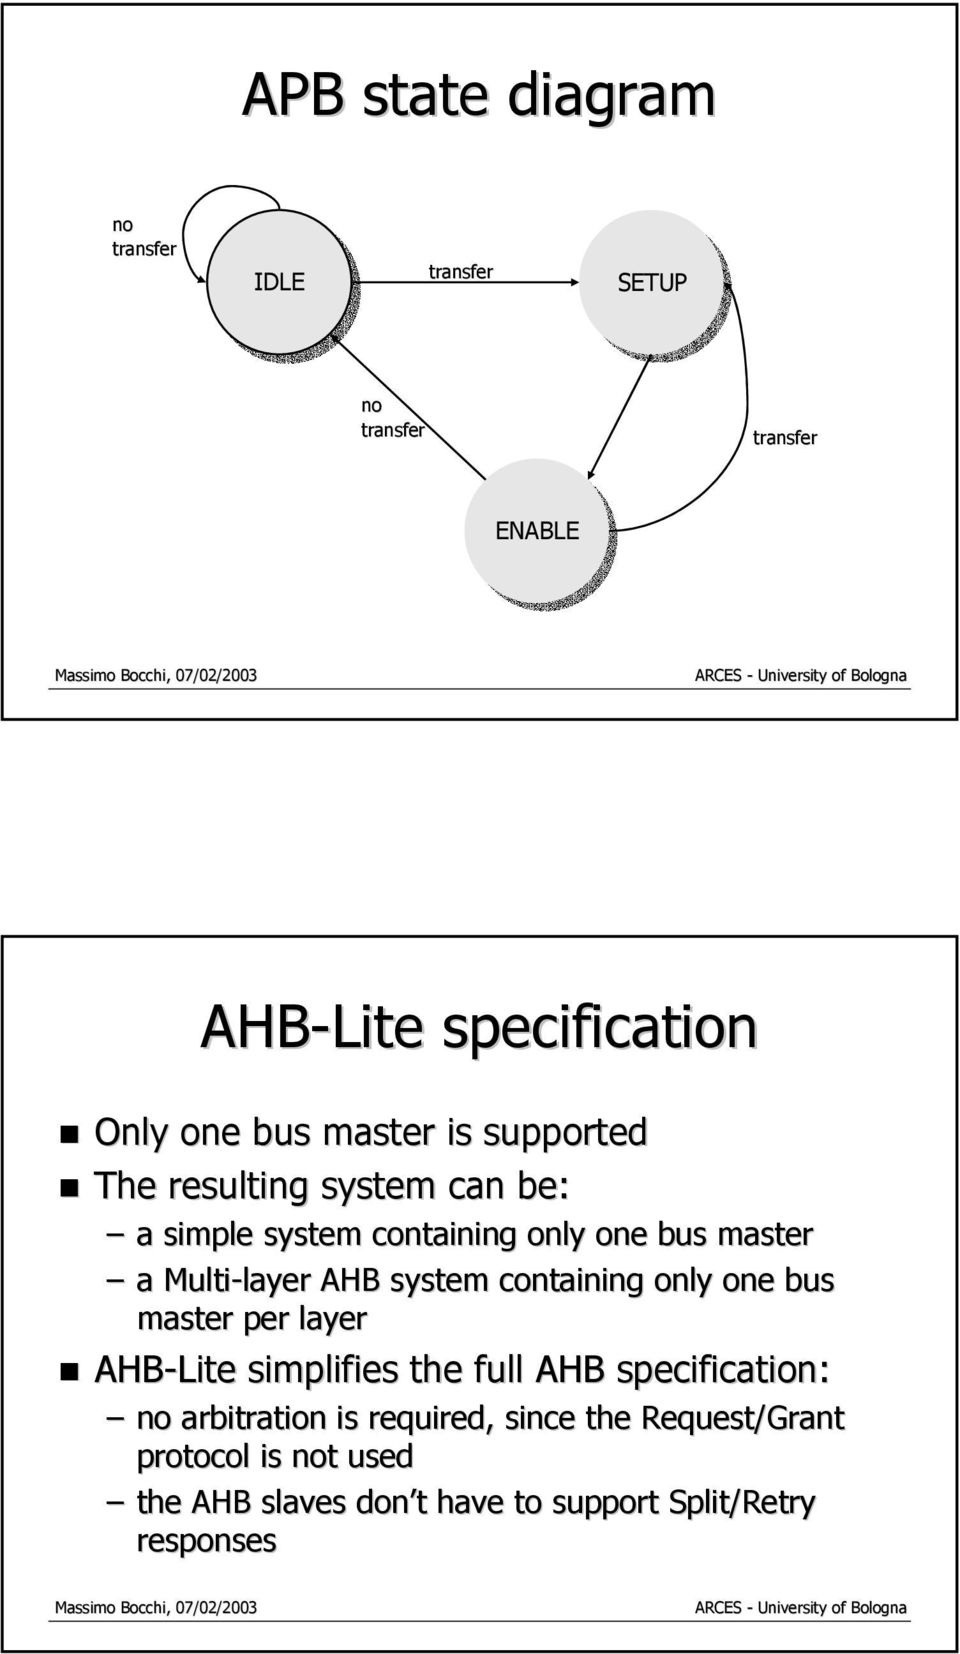 containing only one bus master per layer AHB-Lite simplifies the full AHB specification: no arbitration is